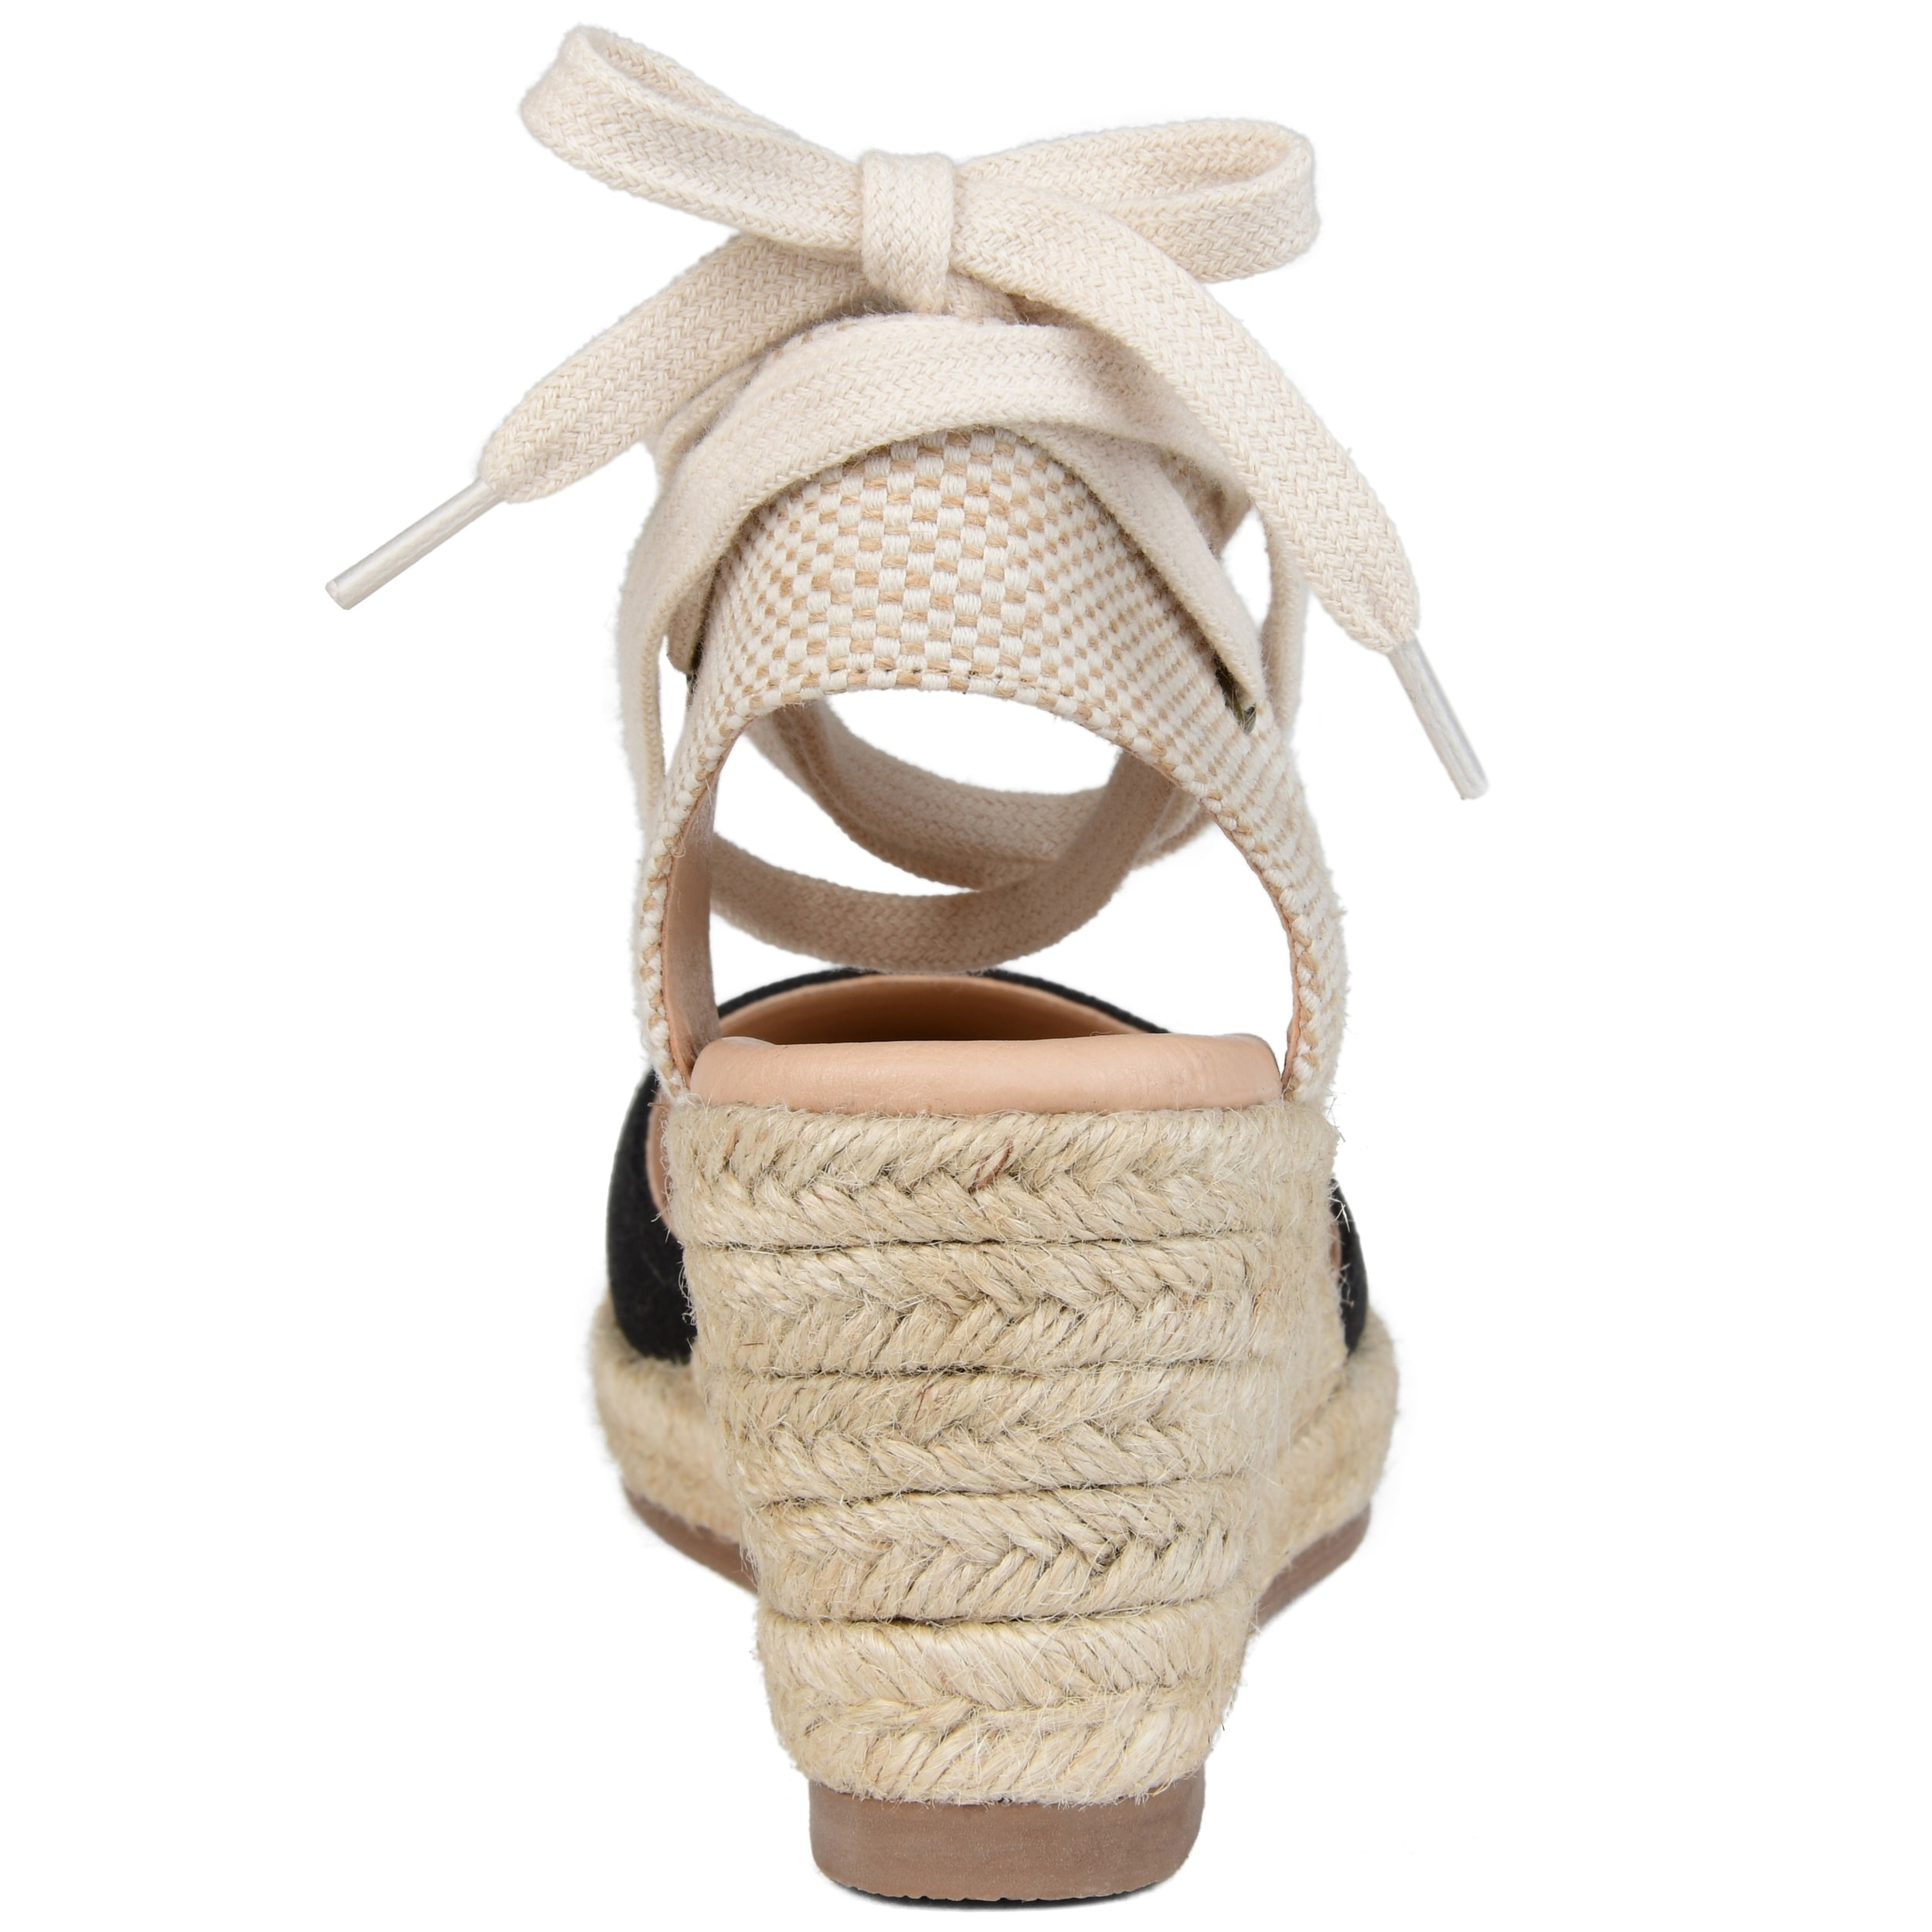 54c4c19b8027 Shop Journee Collection Women s Comfort Monte Wedge - On Sale - Free  Shipping Today - Overstock - 21873790